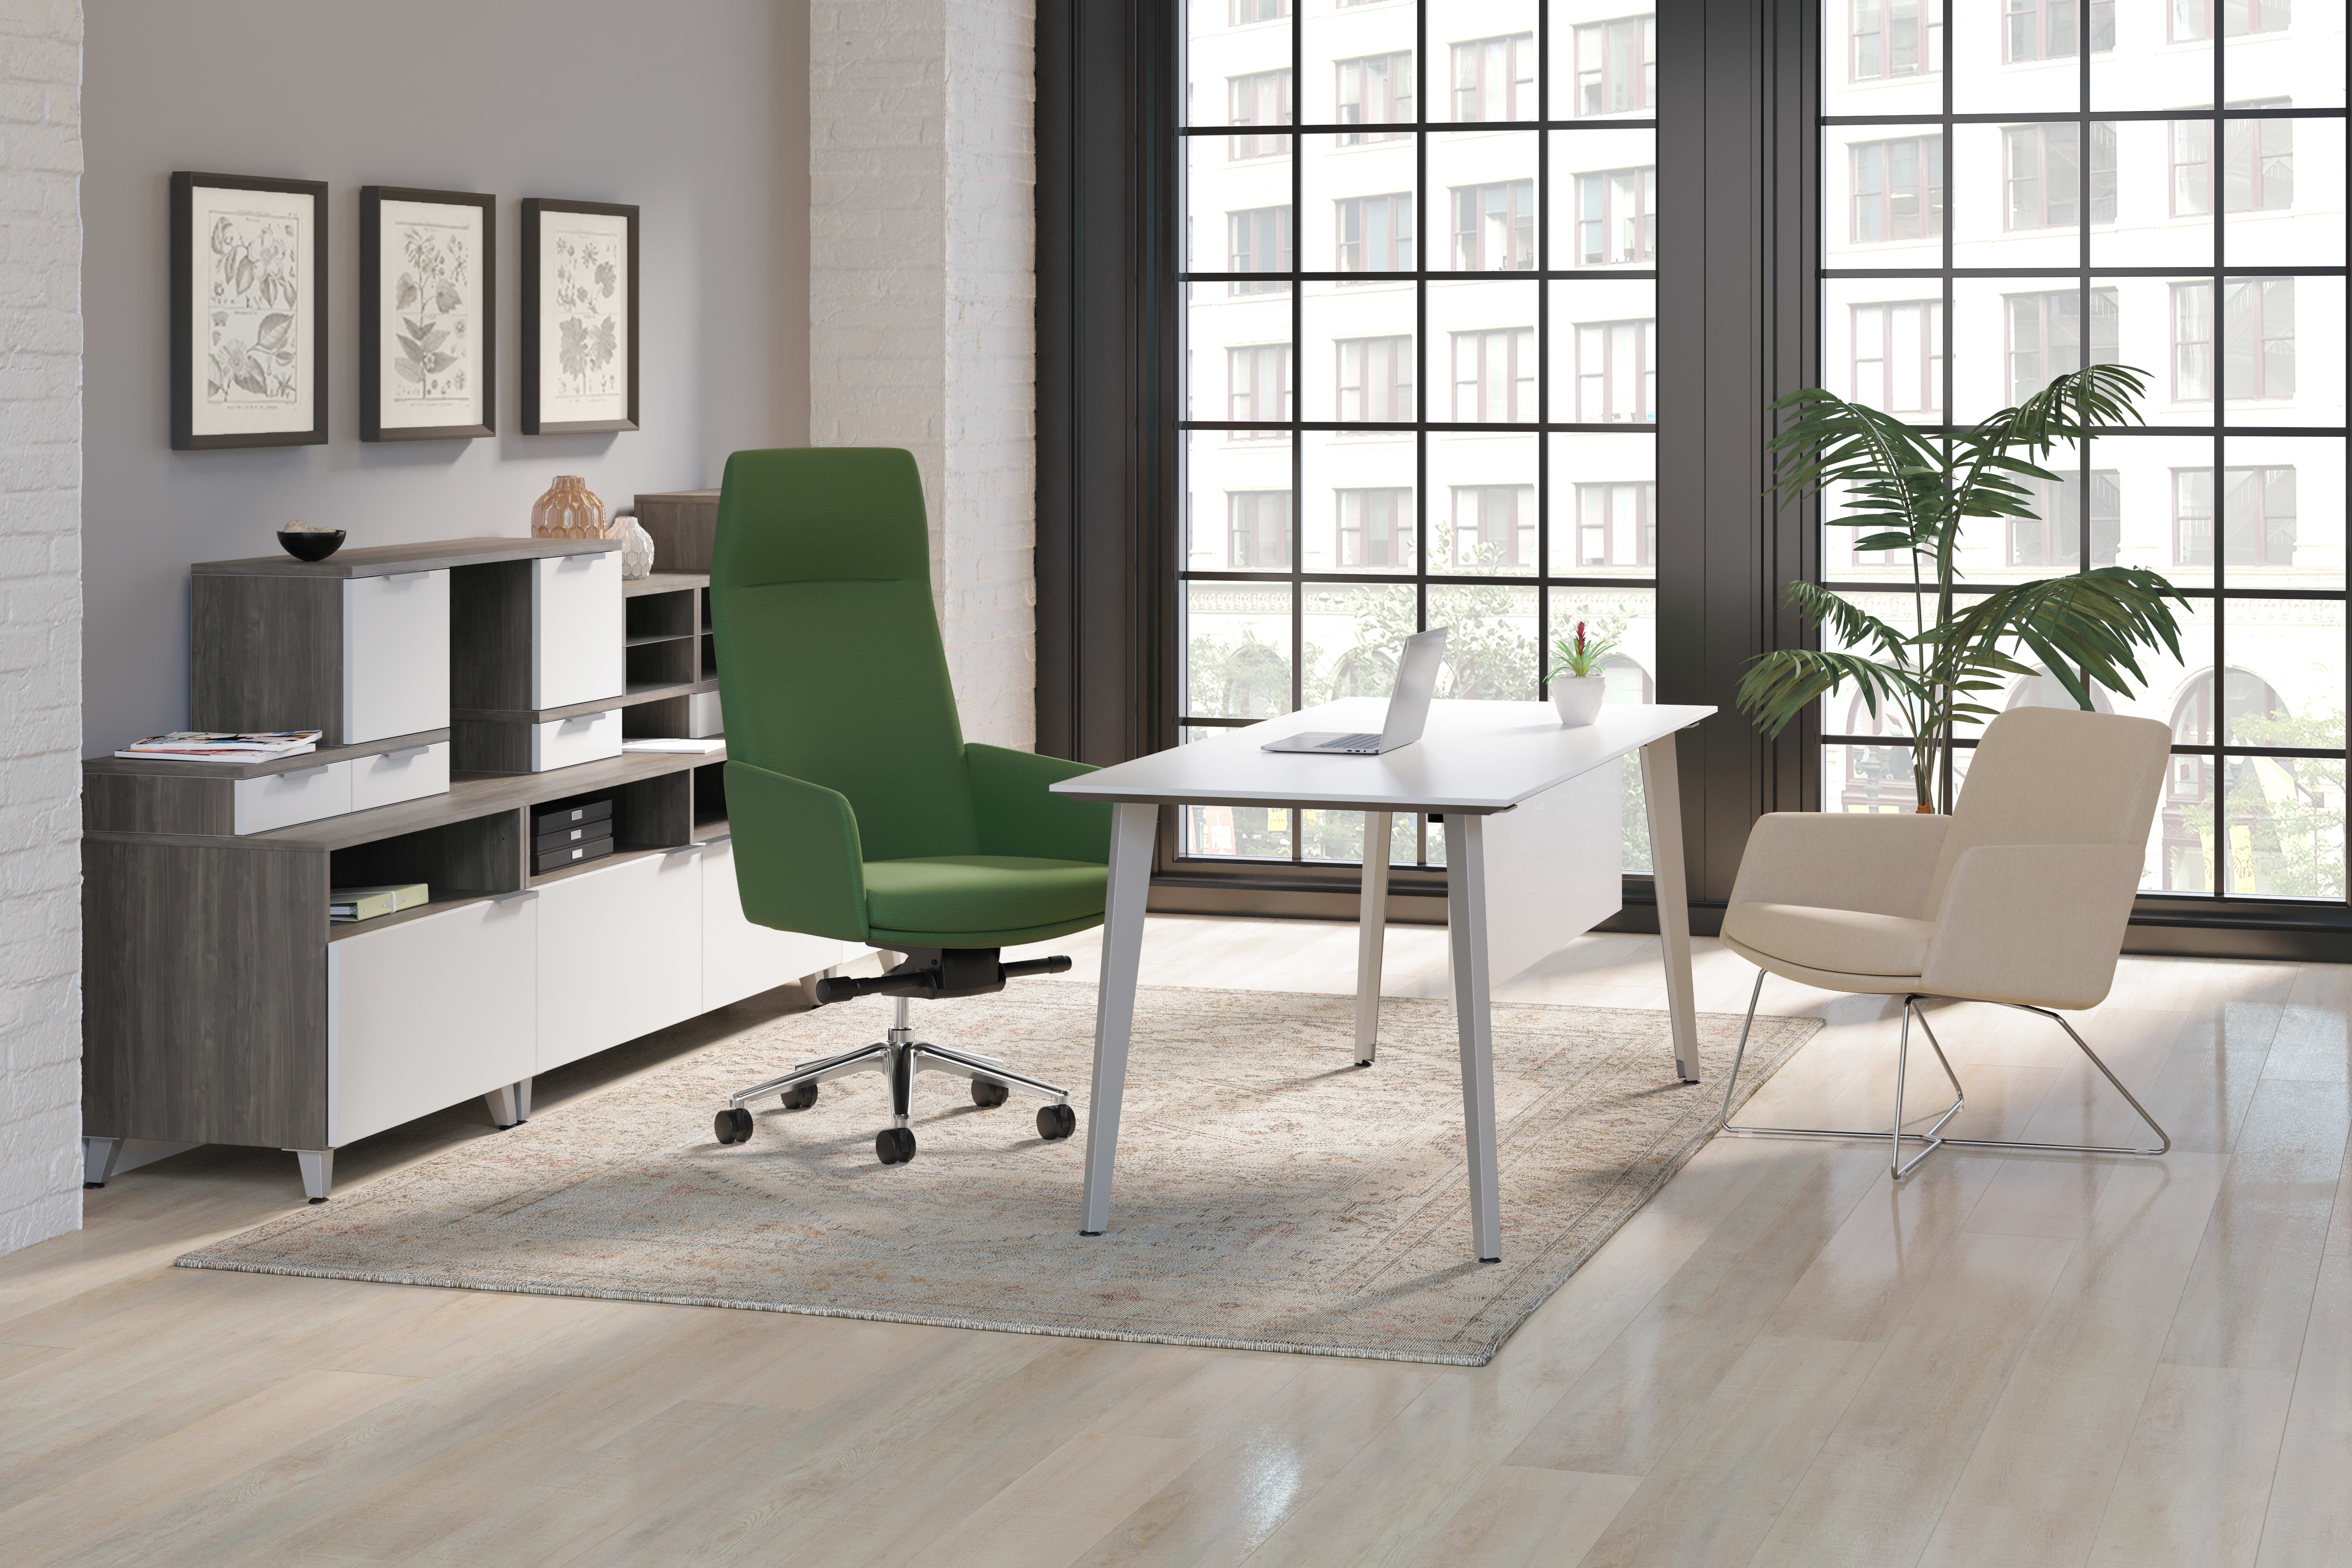 Mav swivel high-back chair and  mid-back chair with wire base in a private office.